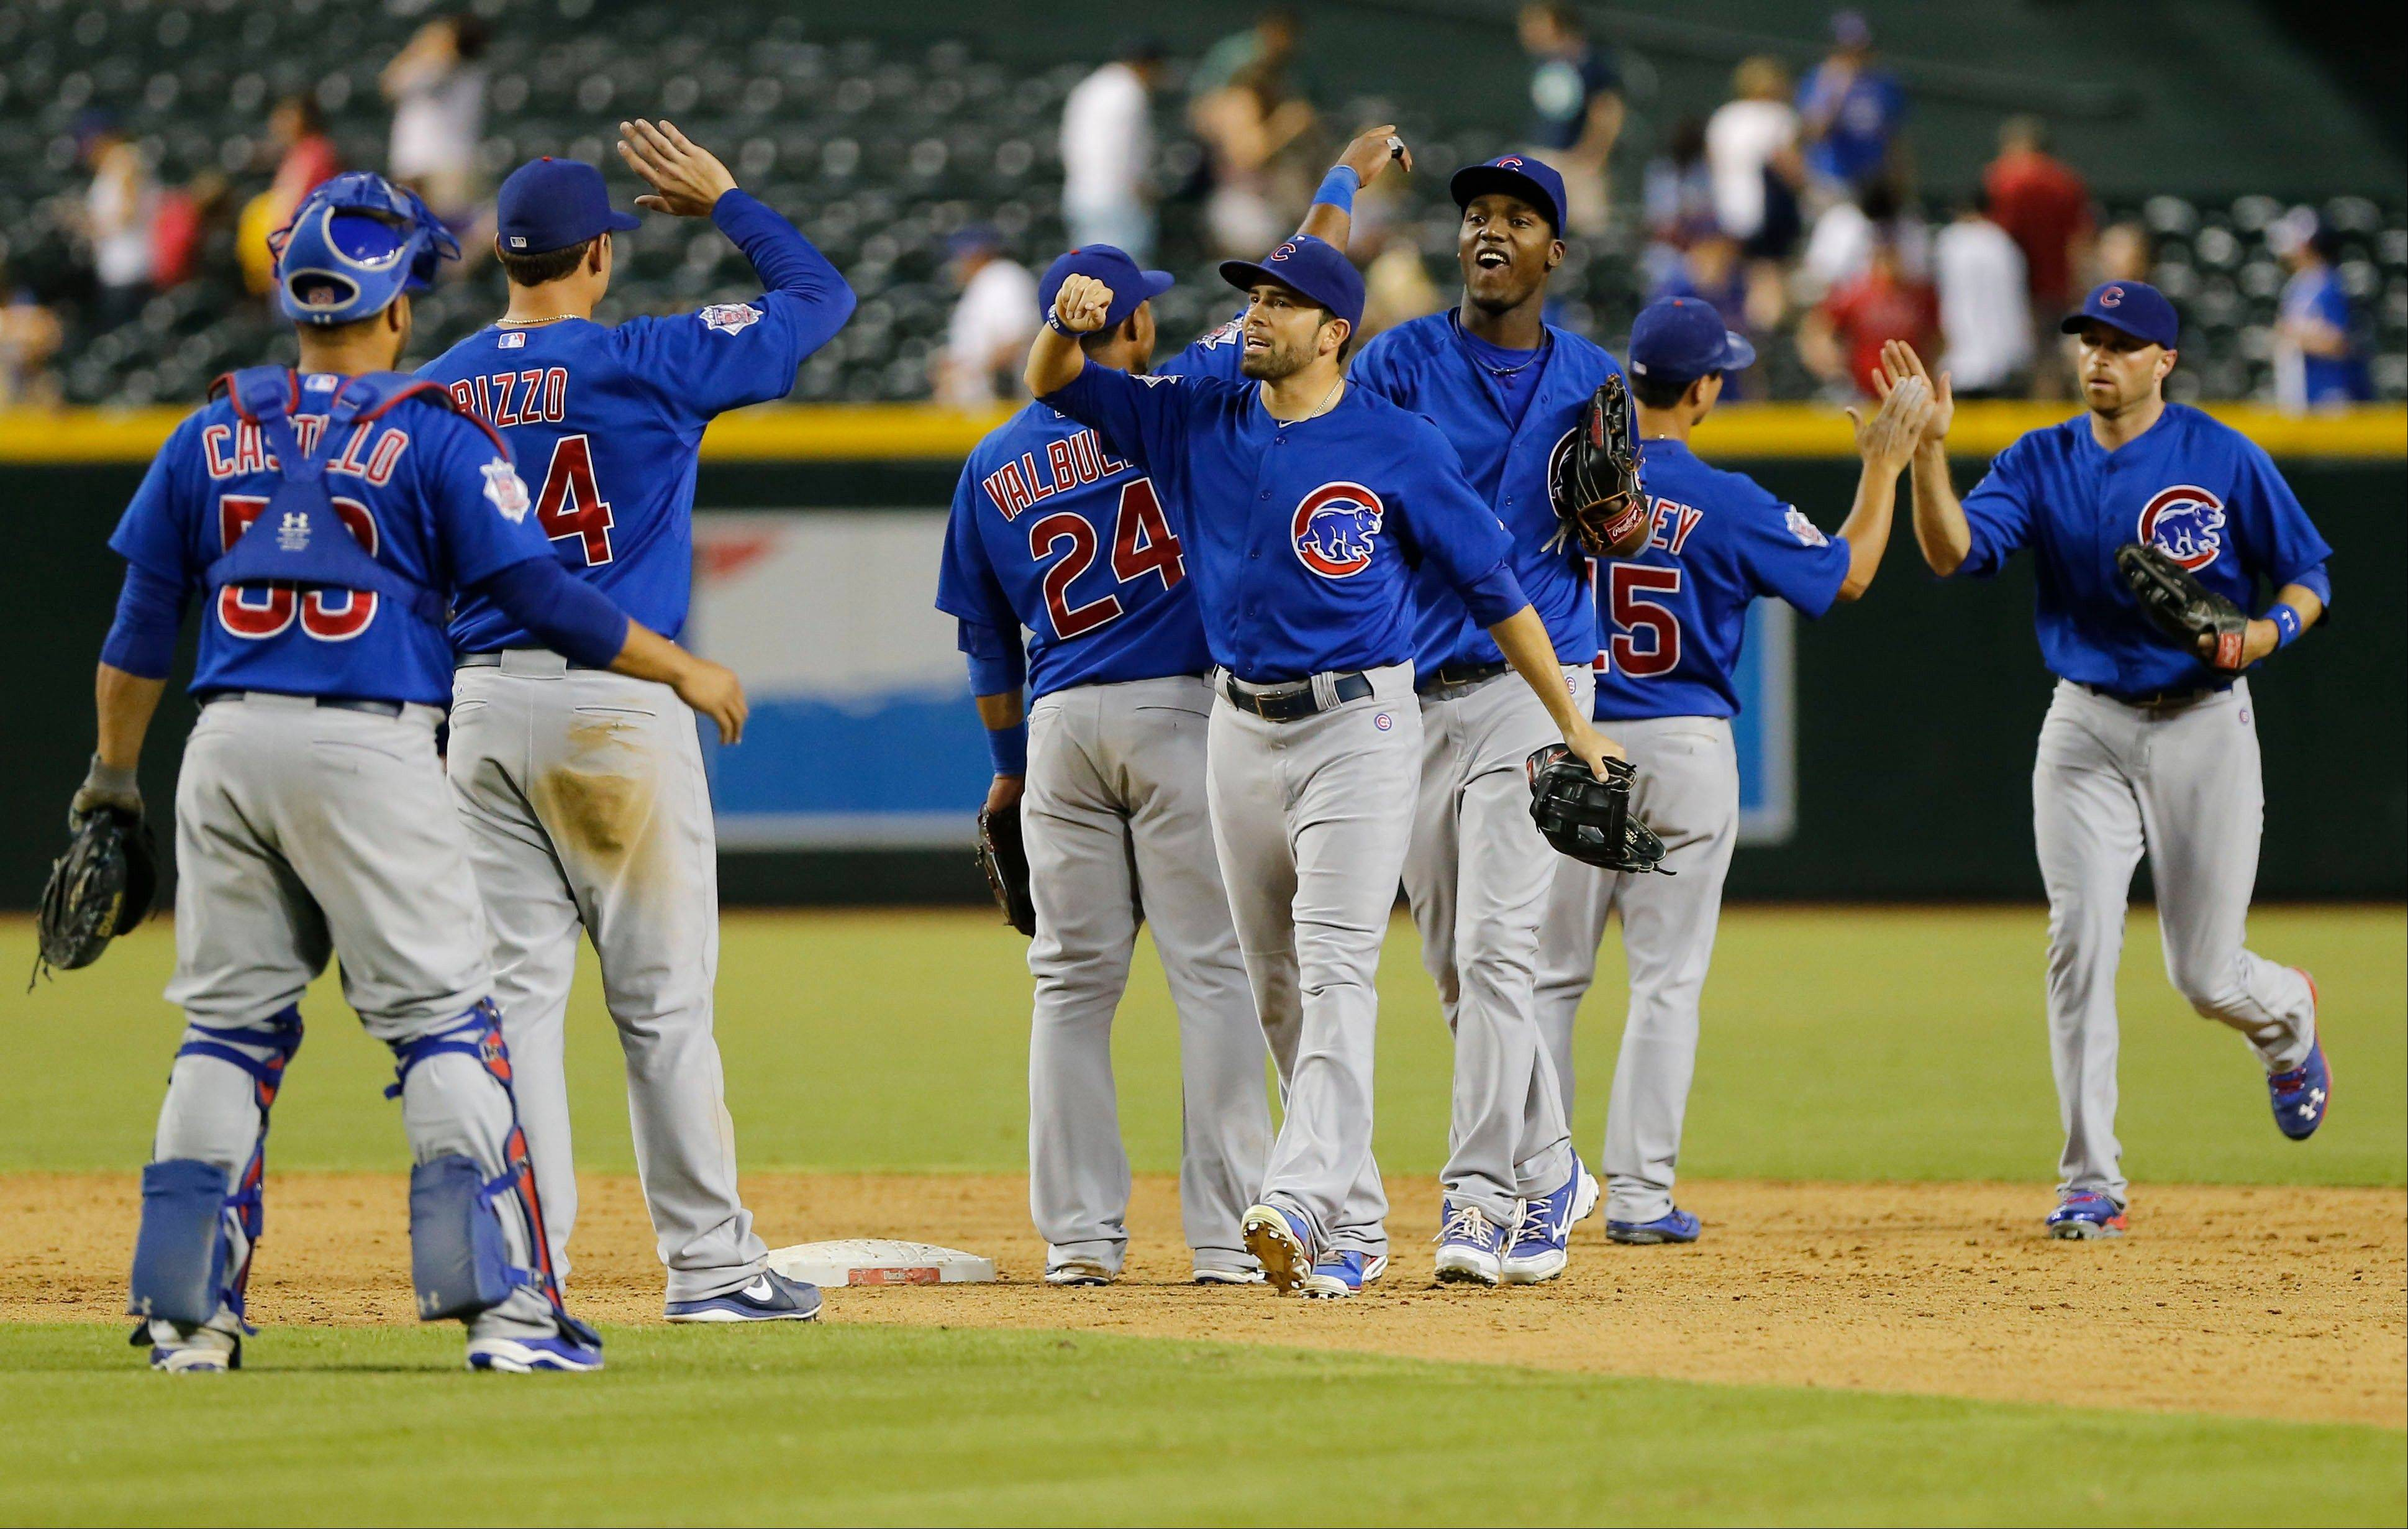 The Cubs celebrate their win against the Arizona Diamondbacks in Phoenix. The Cubs won 7-6 in 12 innings.